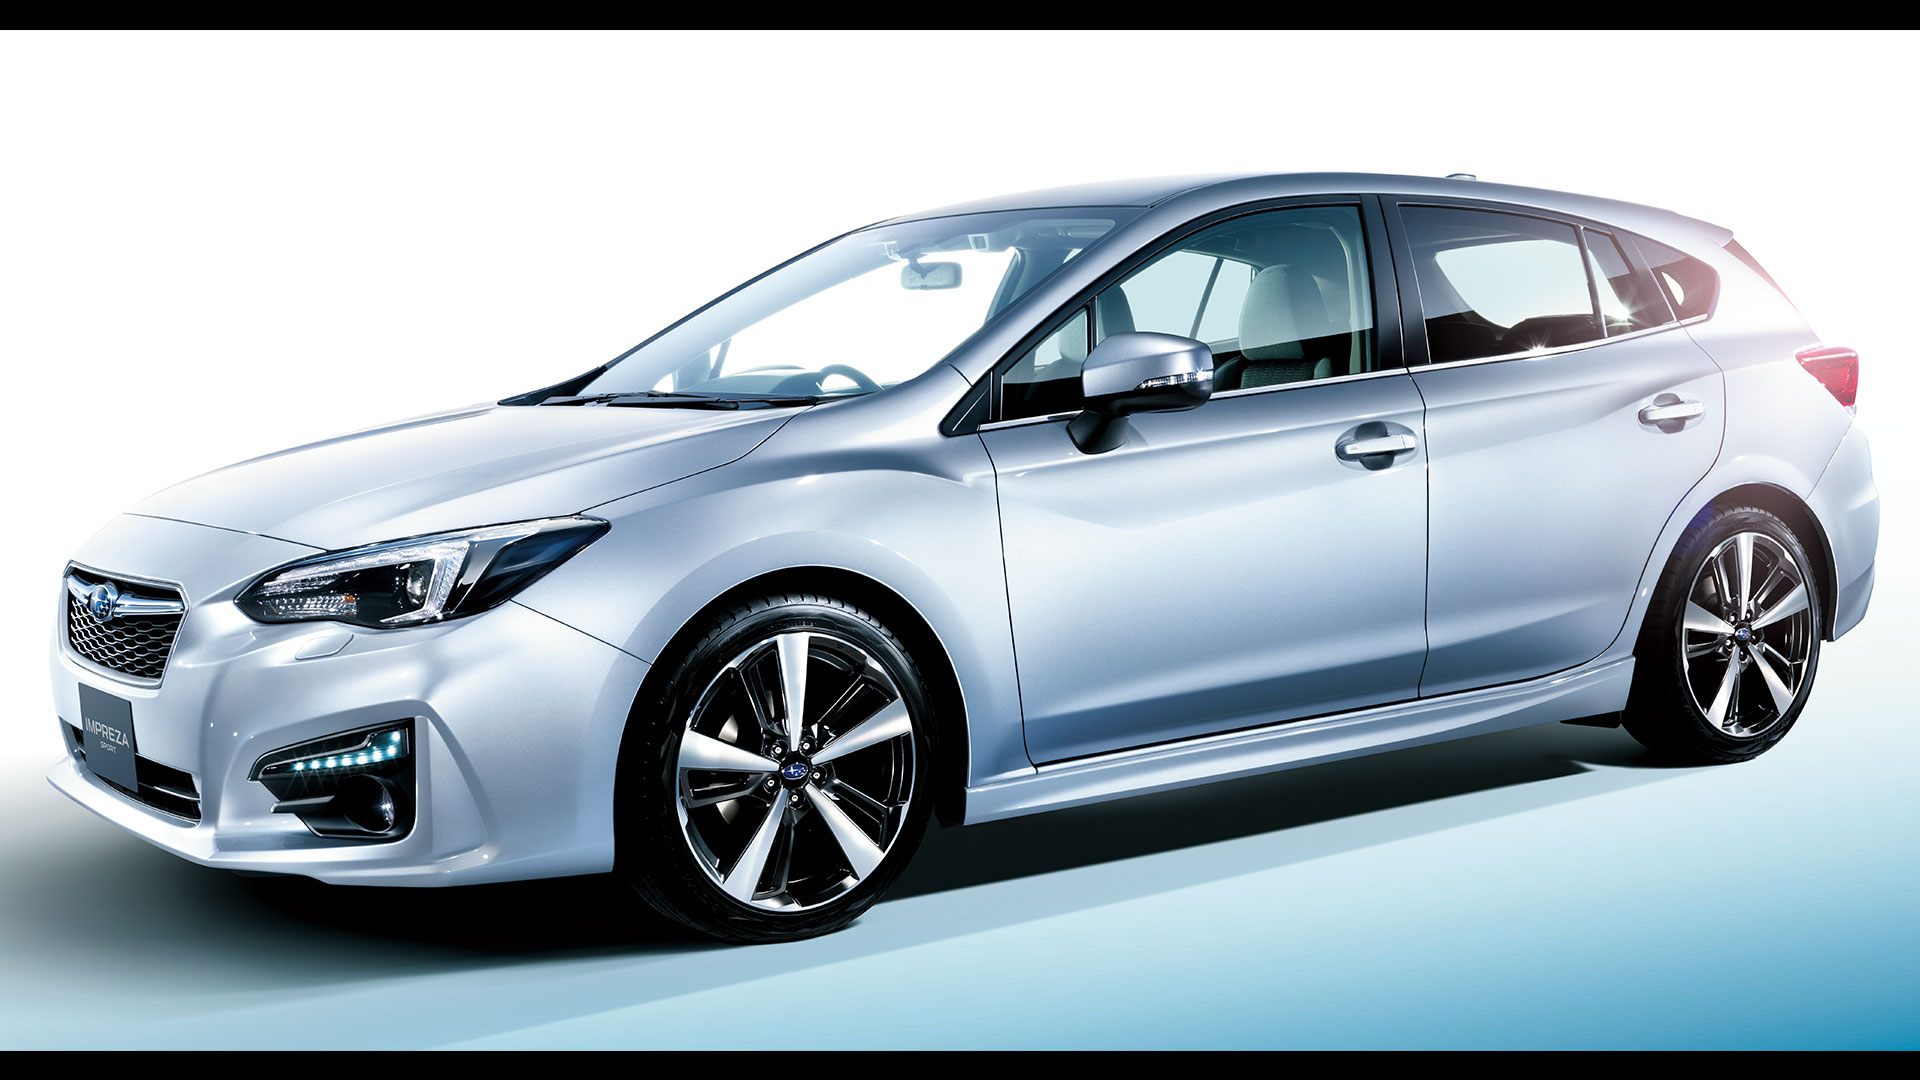 2017 subaru impreza launched in japan  comes with plenty of safety features